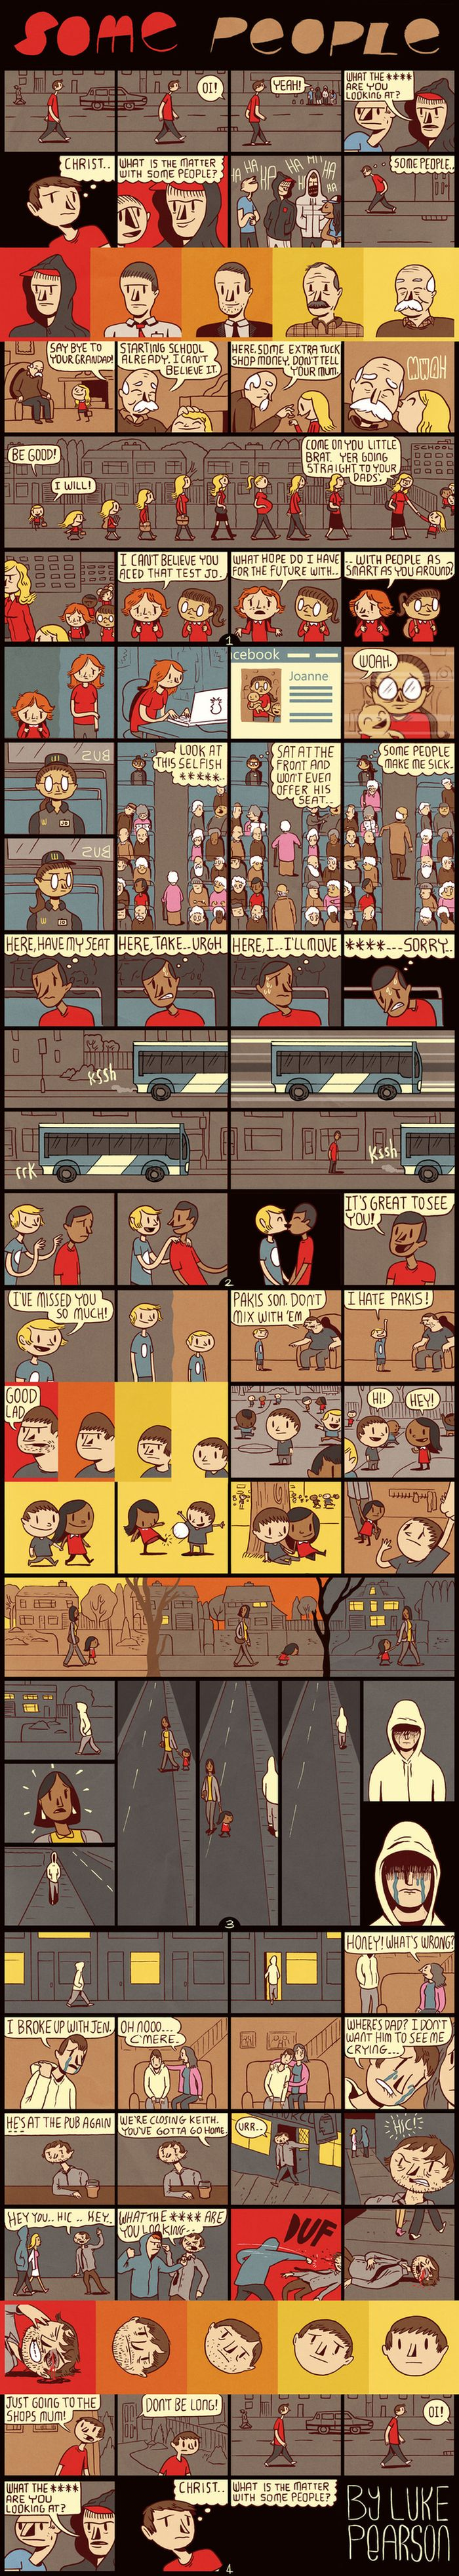 """""""Some People"""" by Luke Pearson (1 pic)"""